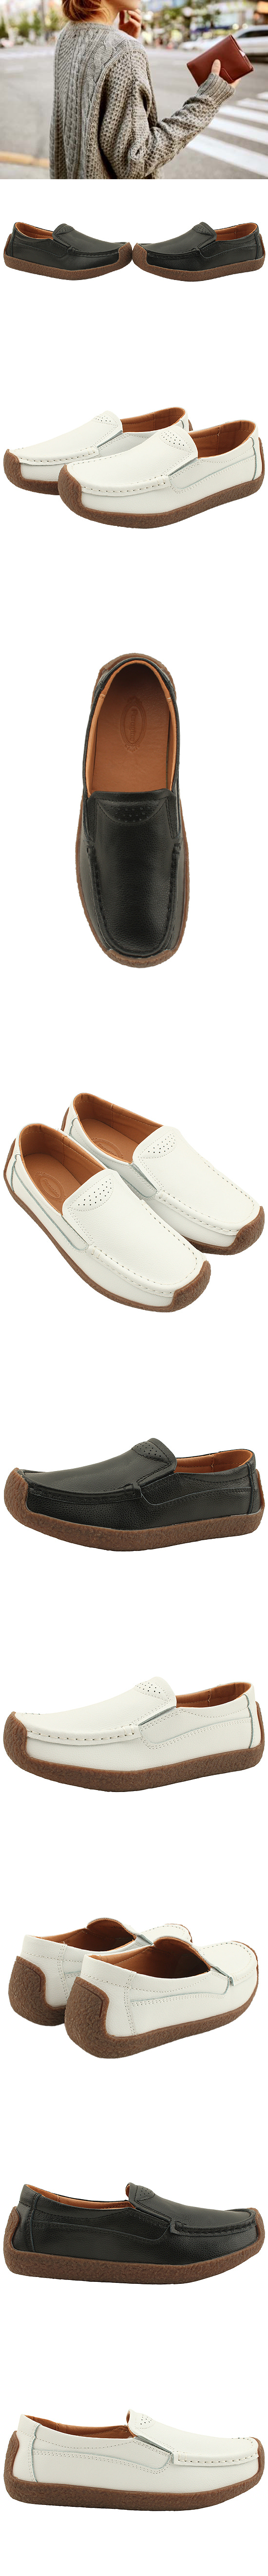 Cowhide Simple Comfort Shoes Loafers White